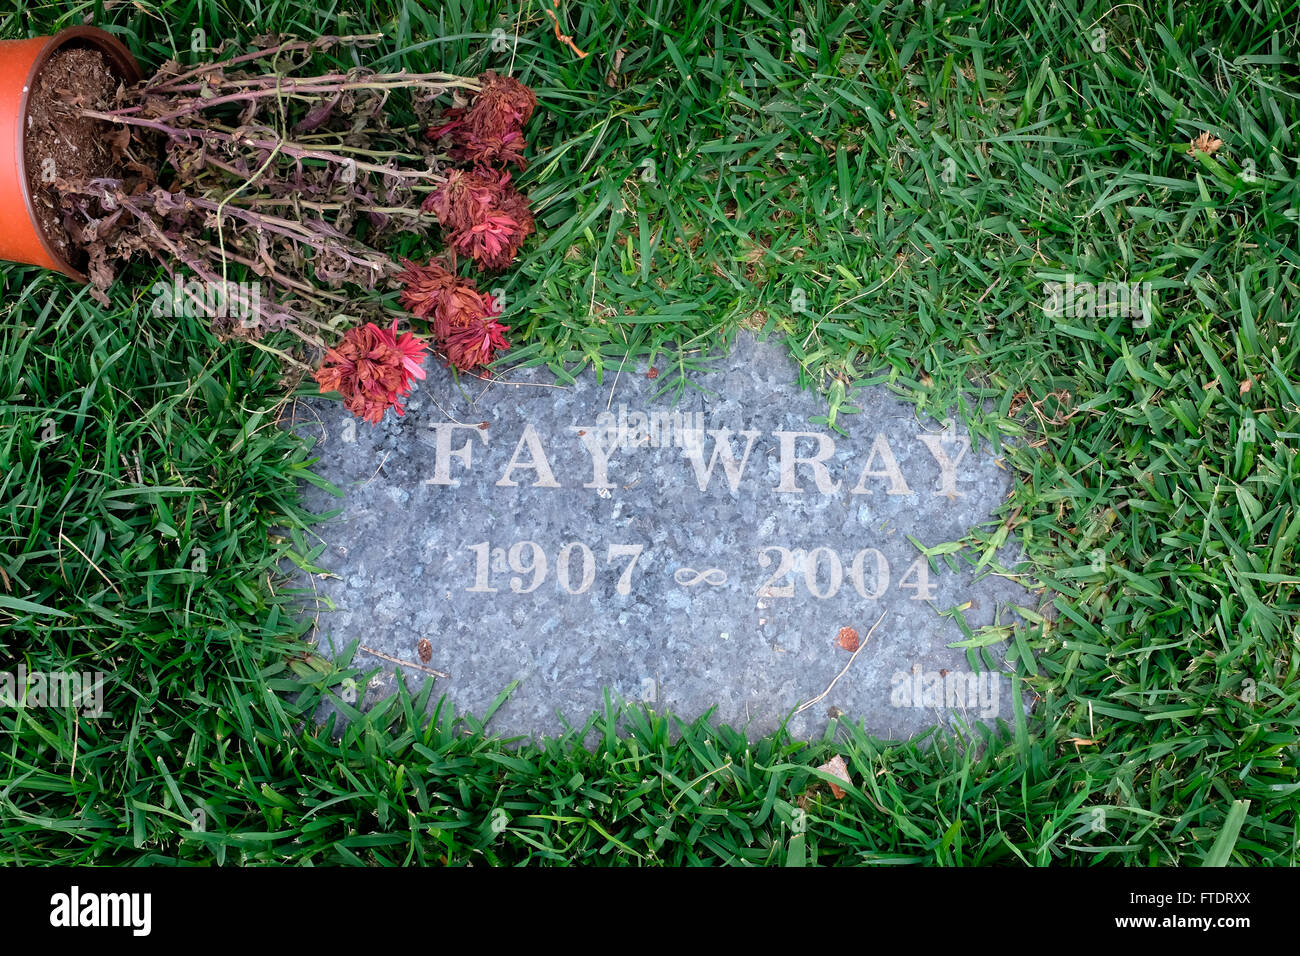 Grave of Fay Wray with dead flowers in Hollywood Forever Cemetery, Los Angeles, California - Stock Image